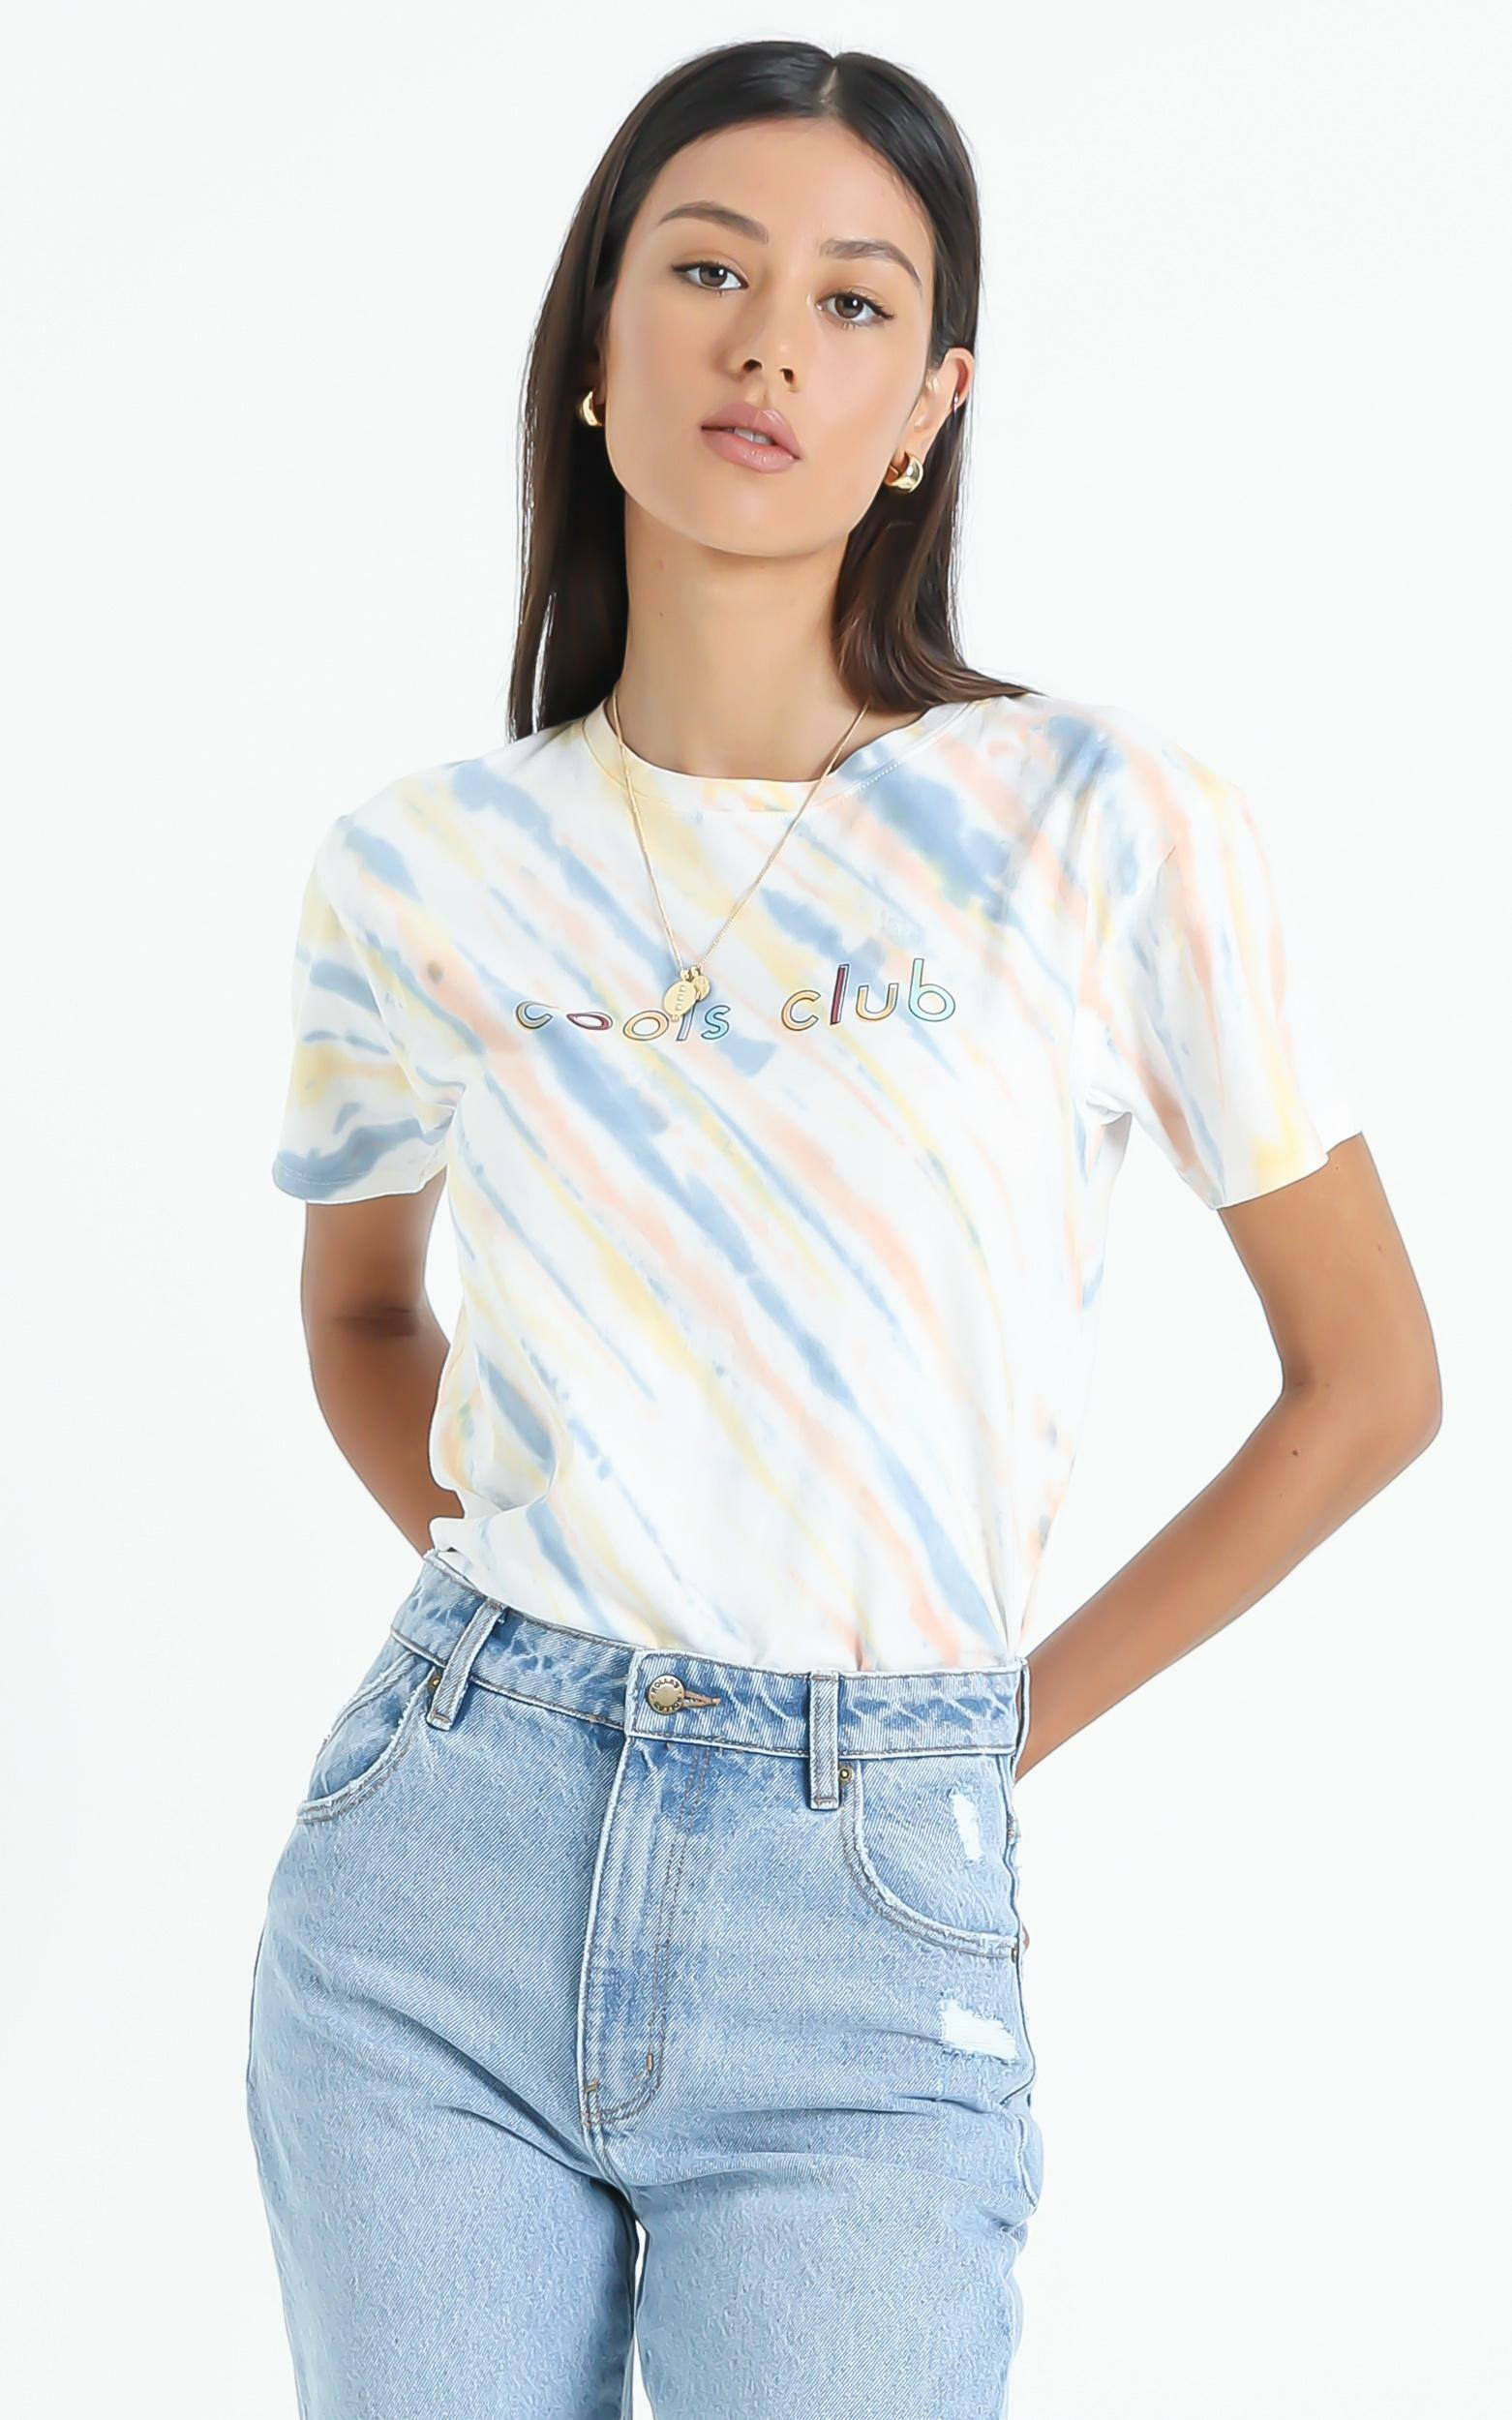 Cools Club - Sunday Tee in Faded Tie Dye - 6 (XS), Multi, hi-res image number null